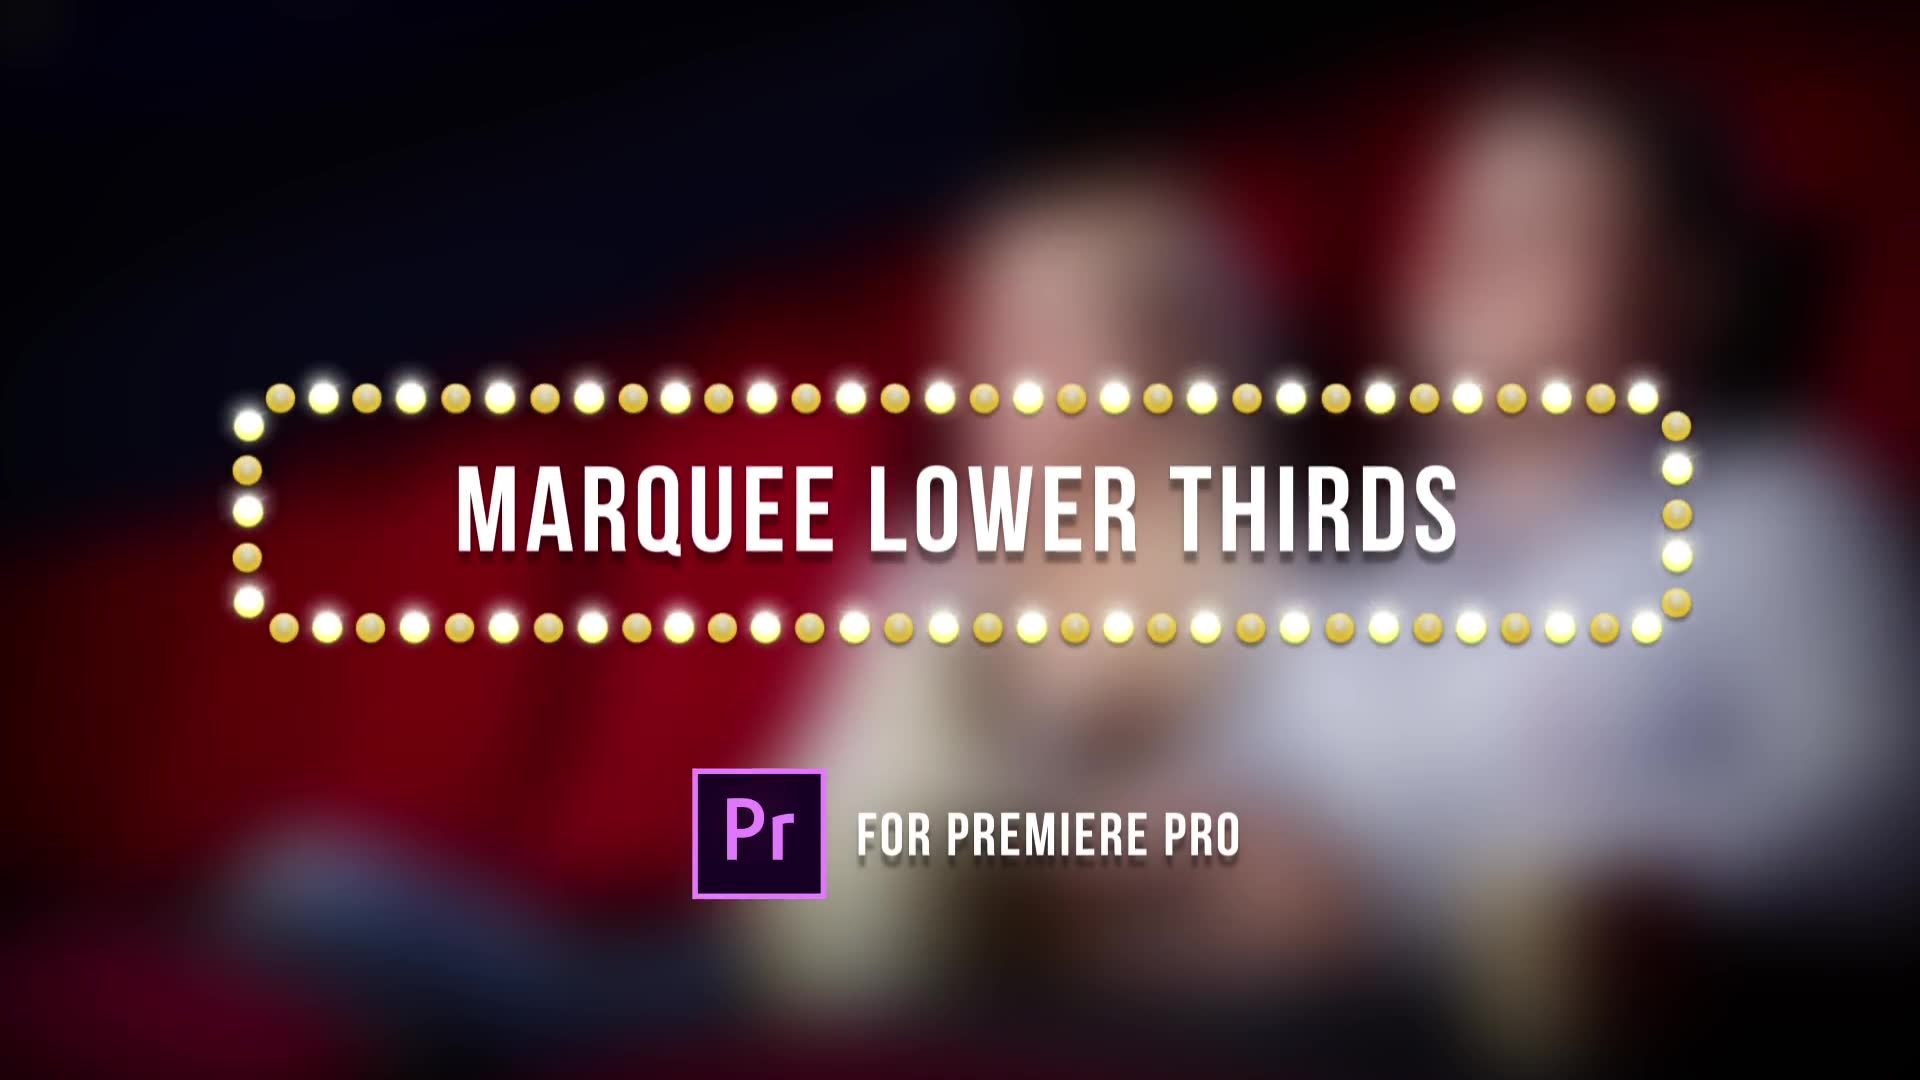 Marquee Lights Titles & Lower Thirds | MOGRT for Premiere Pro Videohive 24552539 Premiere Pro Image 2